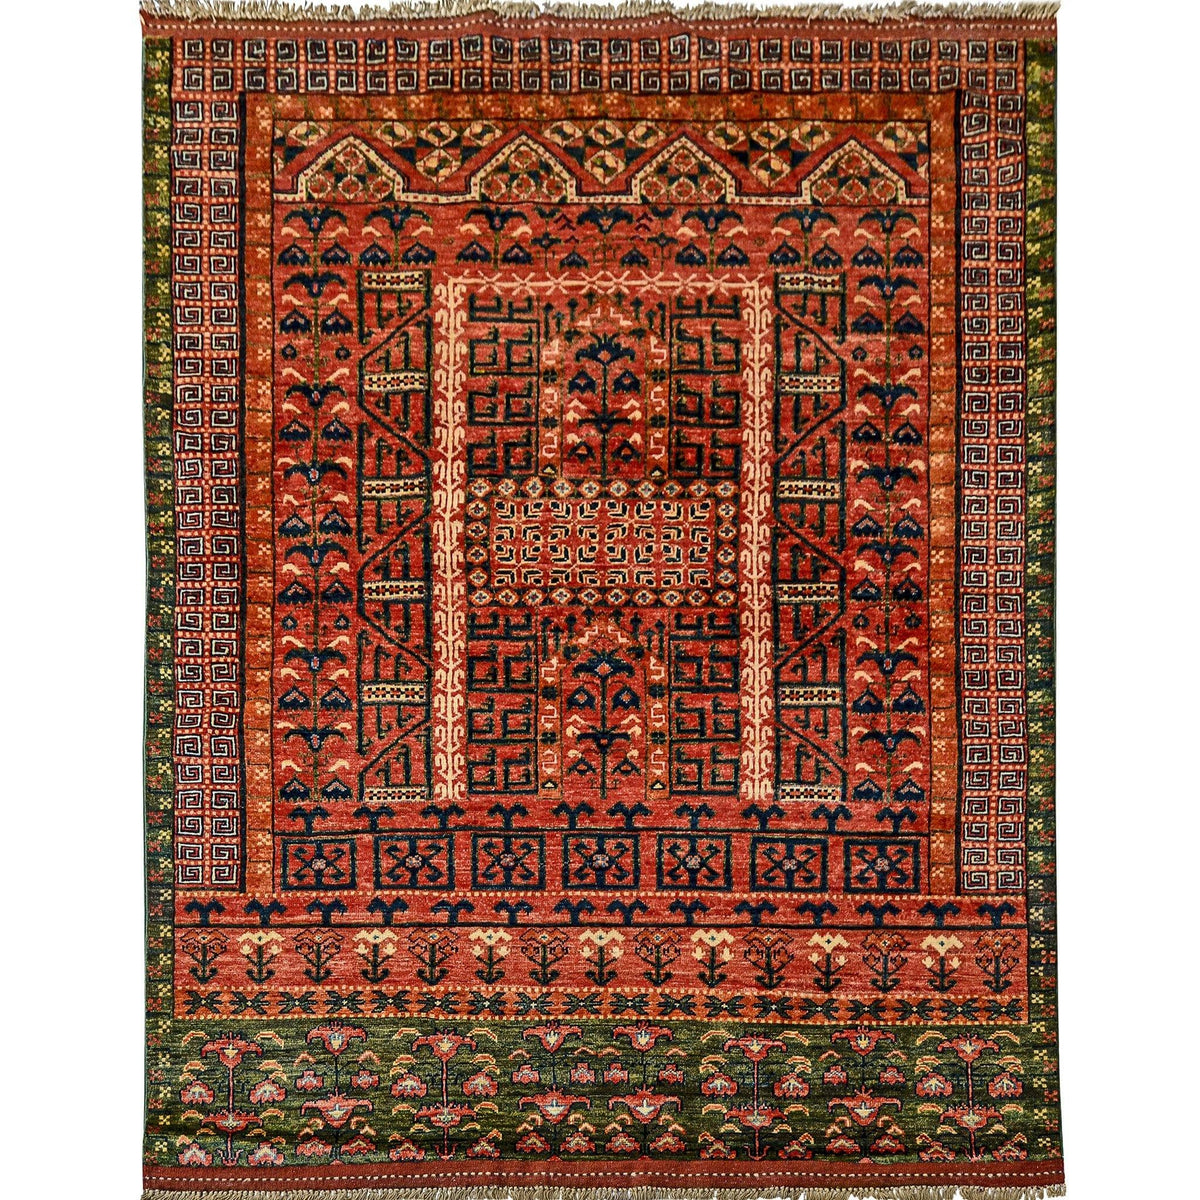 Fine Hand-knotted Wool Rug 156cm x 201cm Persian-Rug | House-of-Haghi | NewMarket | Auckland | NZ | Handmade Persian Rugs | Hand Knotted Persian Rugs